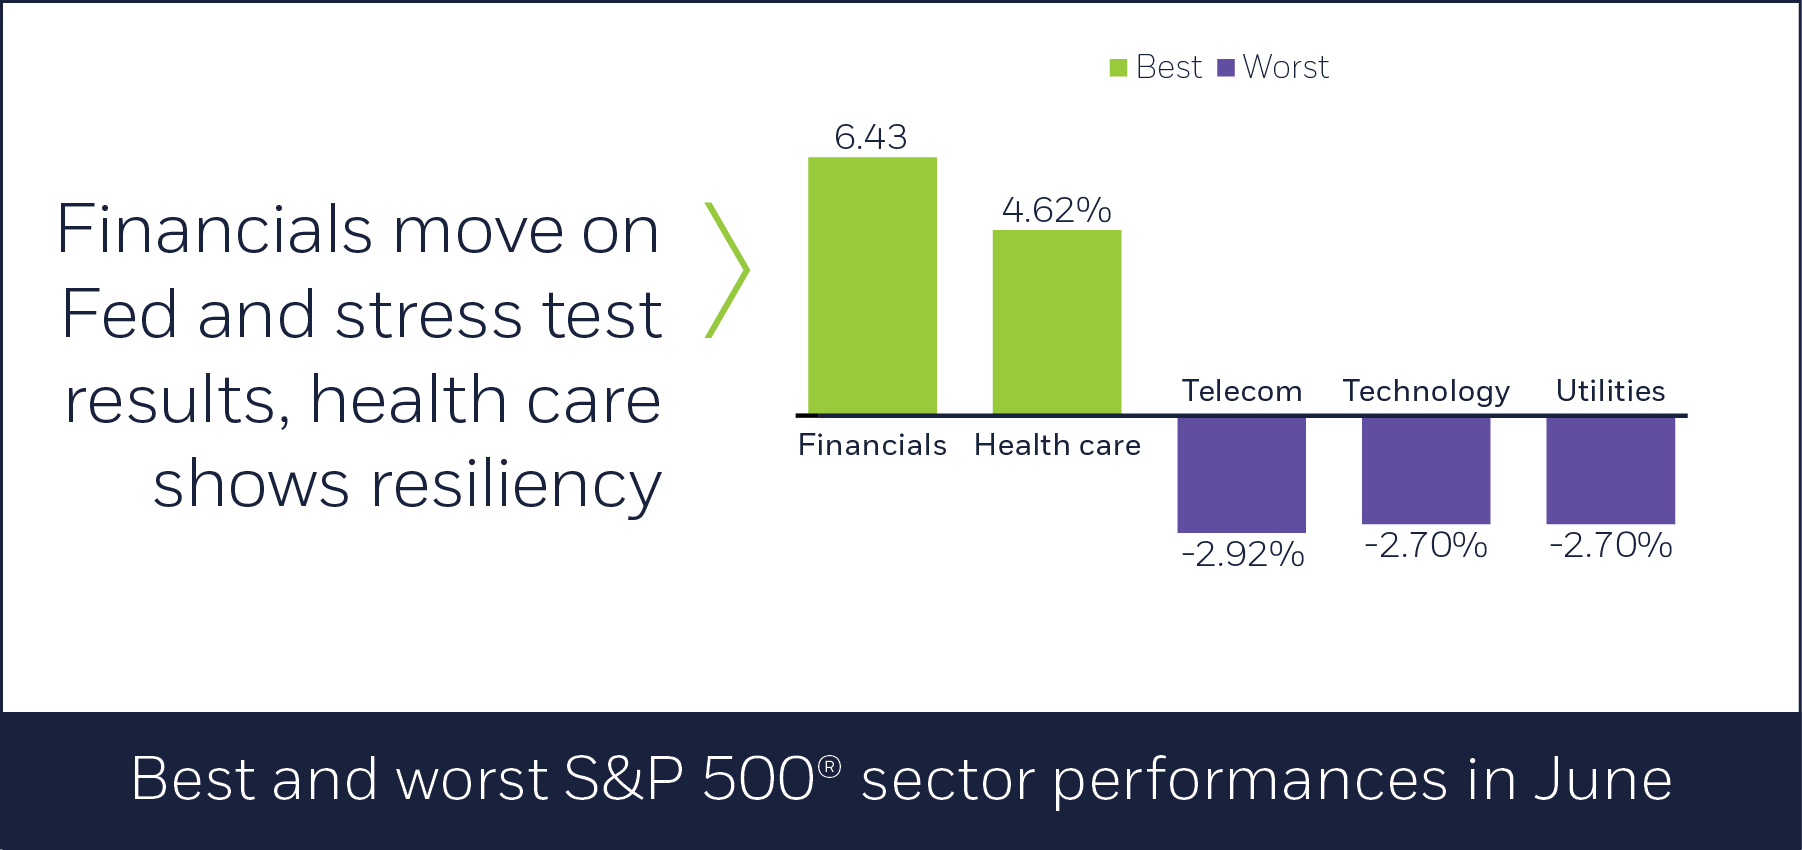 Best and worst S&P 500 sector performances in June